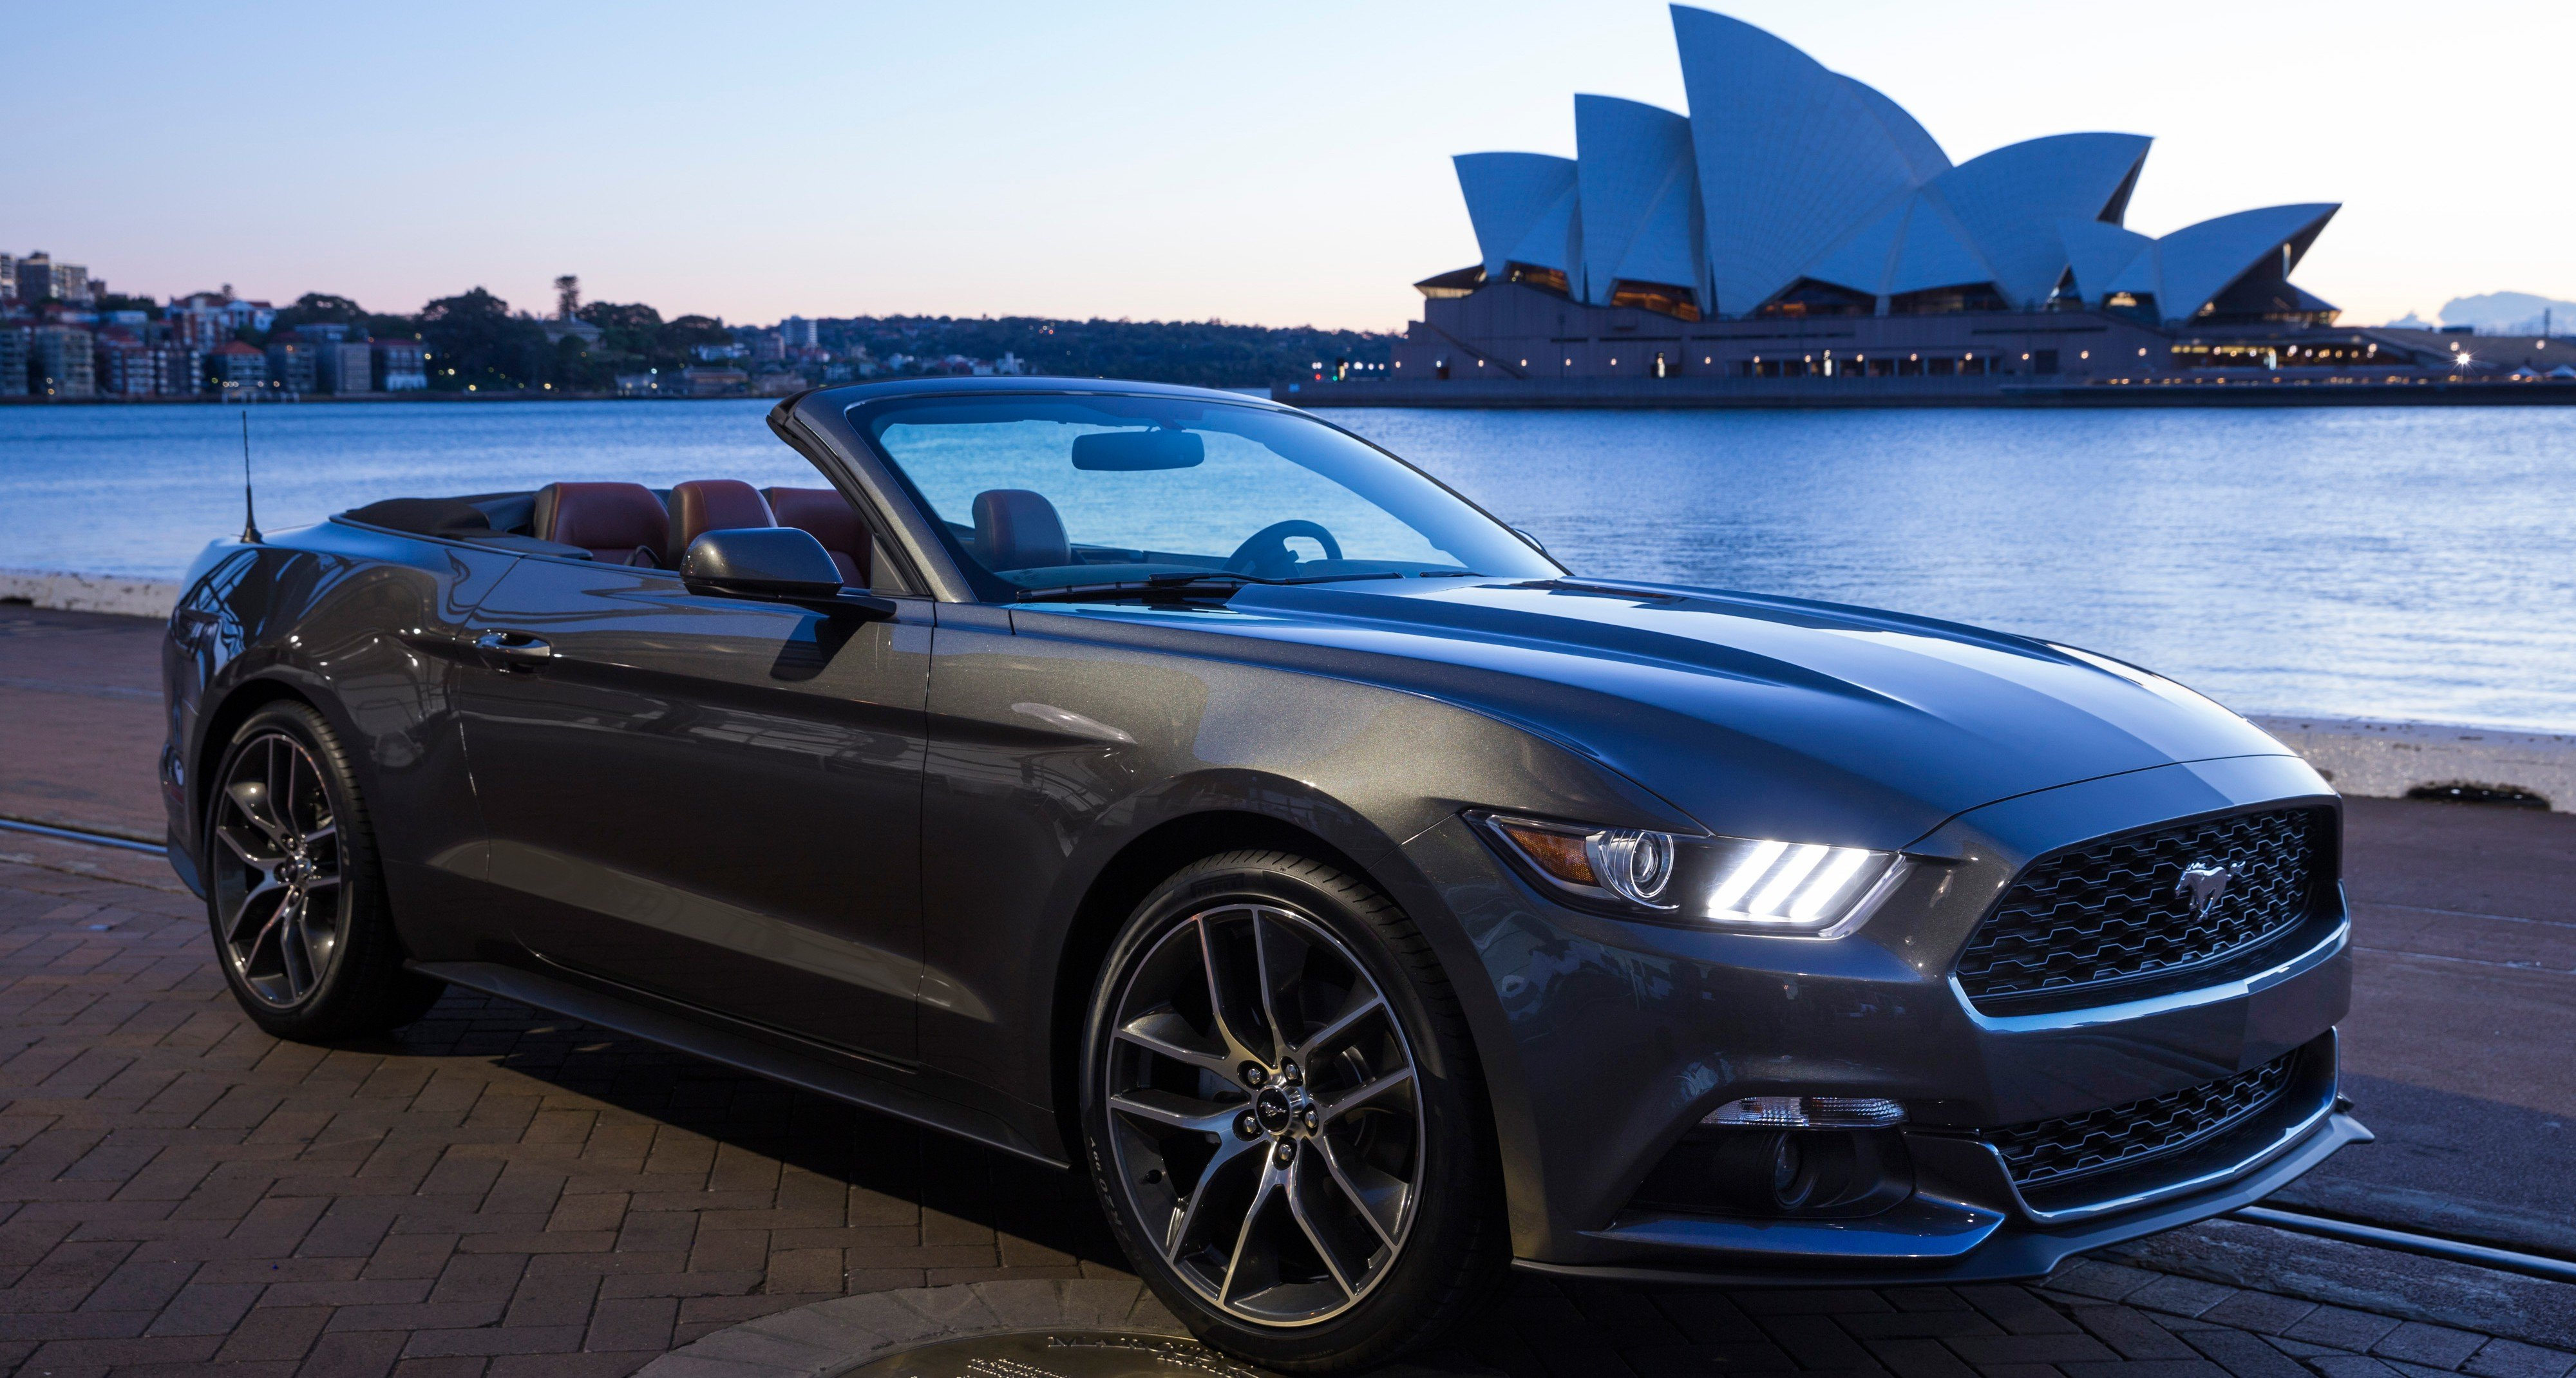 ford mustang convertible v 2015 pictures 11 - 2015 Ford Mustang Black Convertible